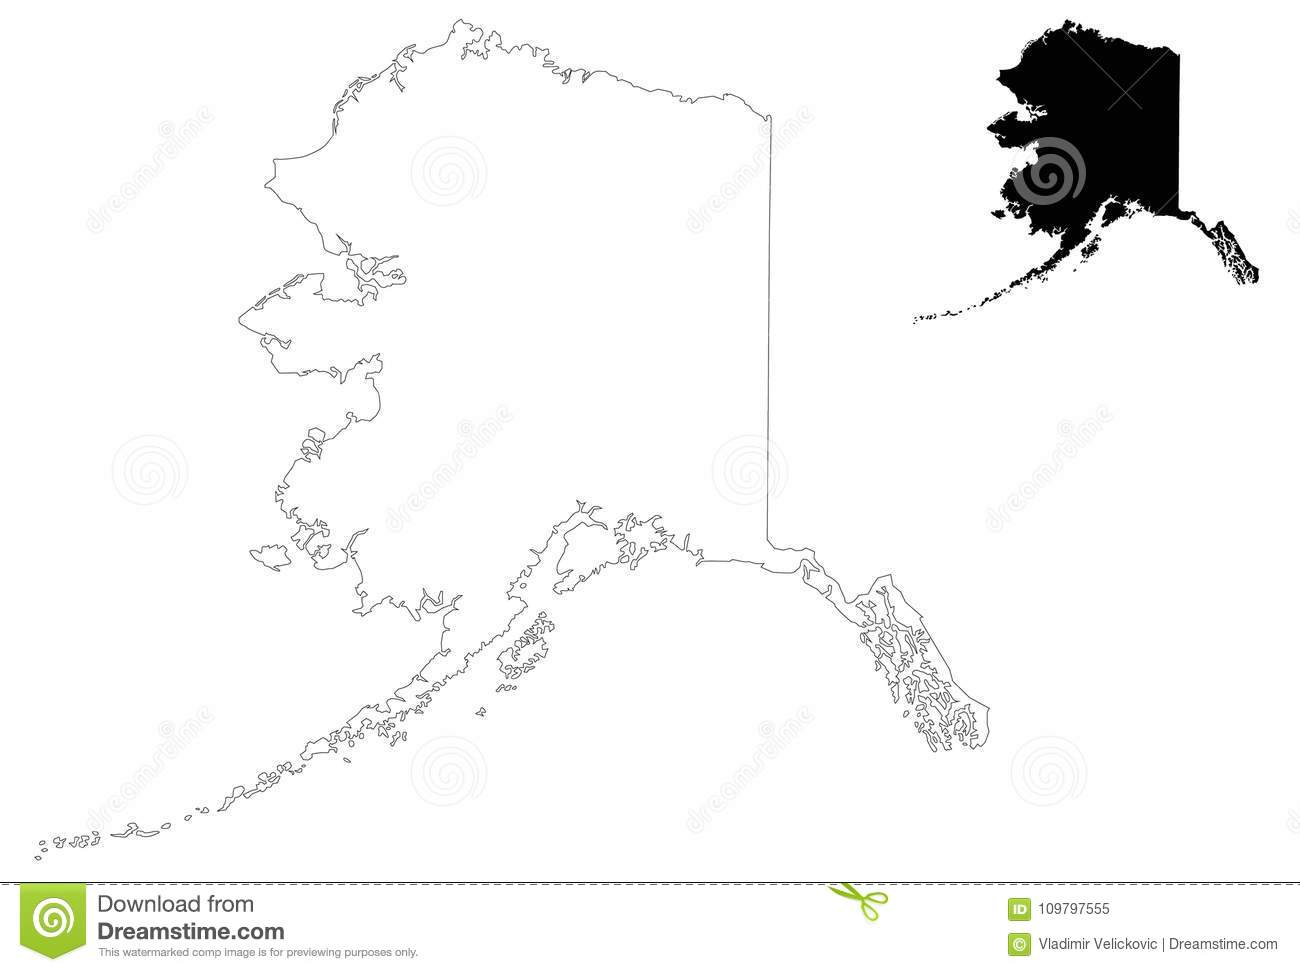 Alaska Map - State Of The United States Stock Vector - Illustration ...